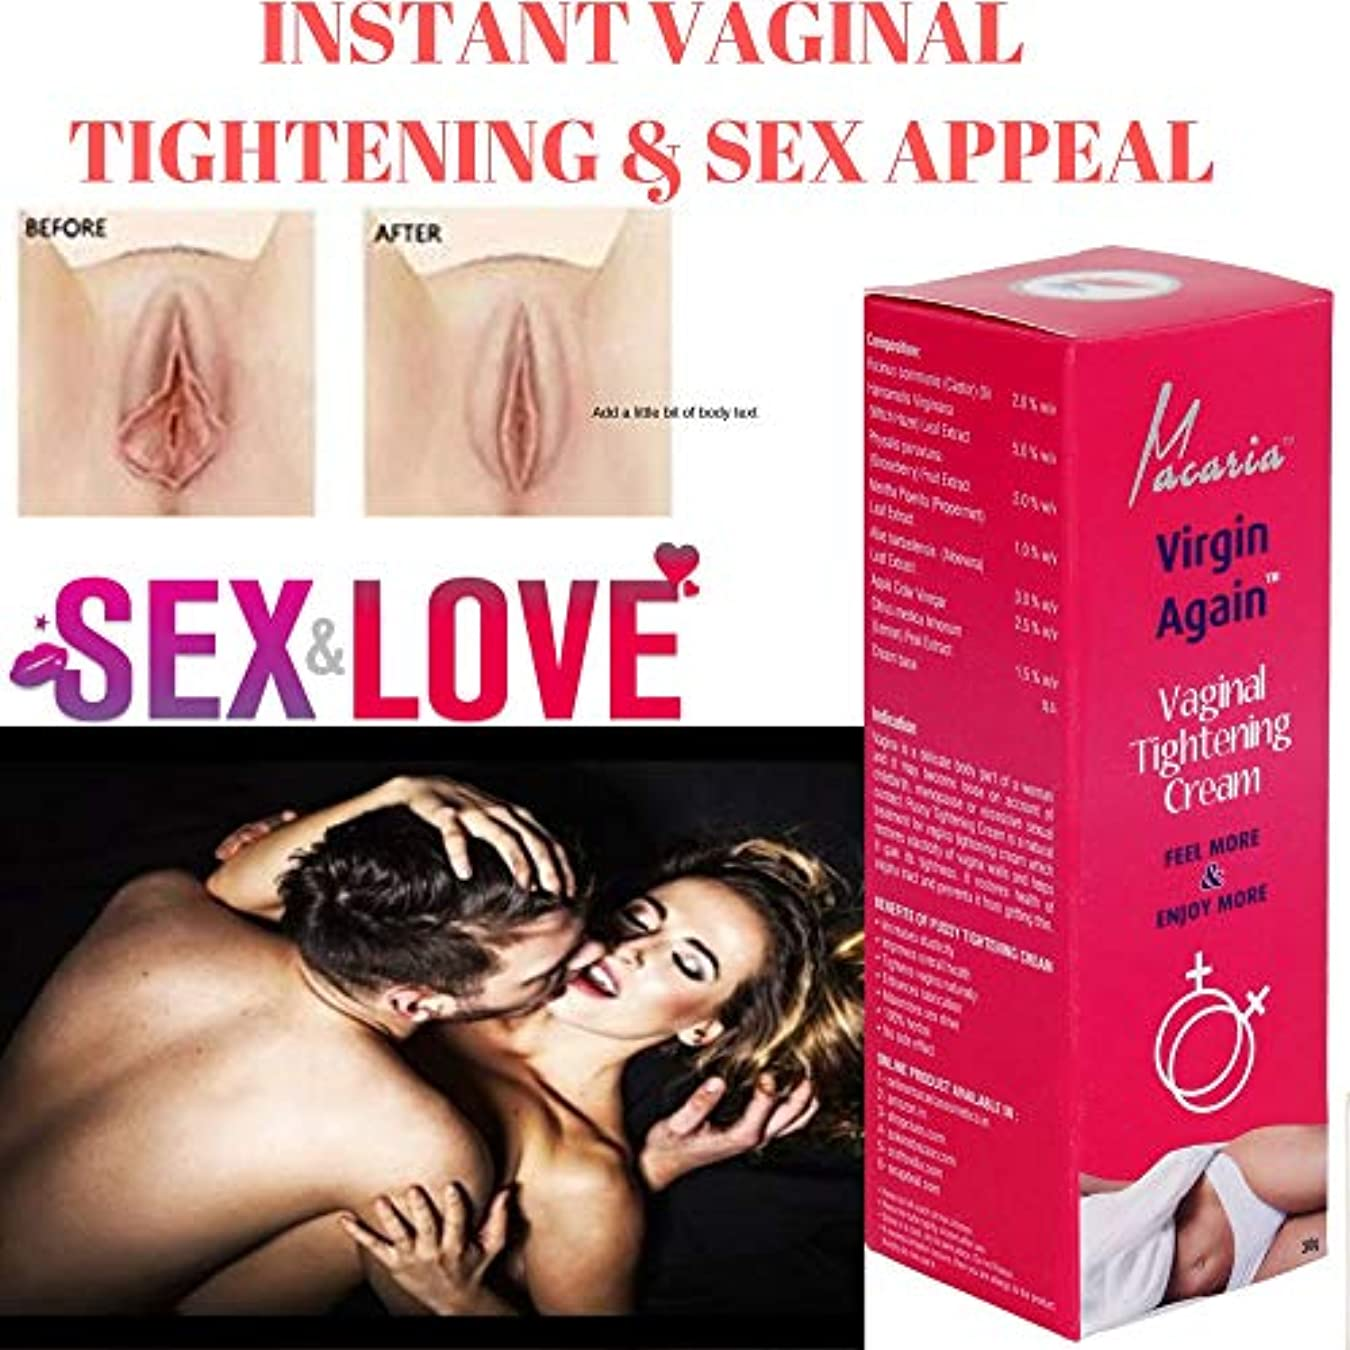 ガム液化する候補者VIRGIN AGAIN CREAM (VAGINAL VAGINA TIGHTENING CREAM GEL LOTION